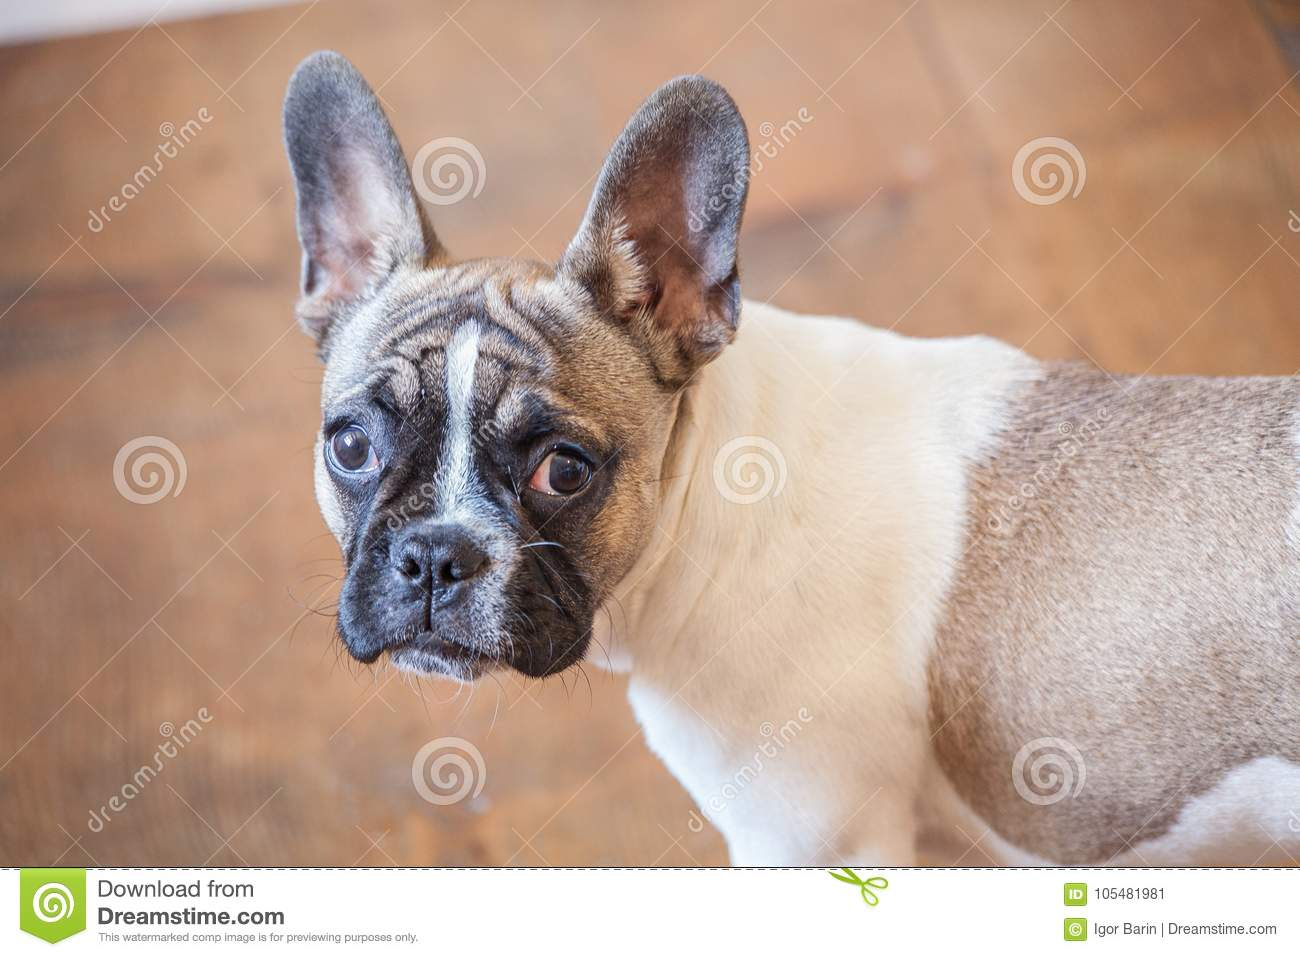 French Bulldog Puppy White Brown Curious Stock Image Image Of Building Little 105481981